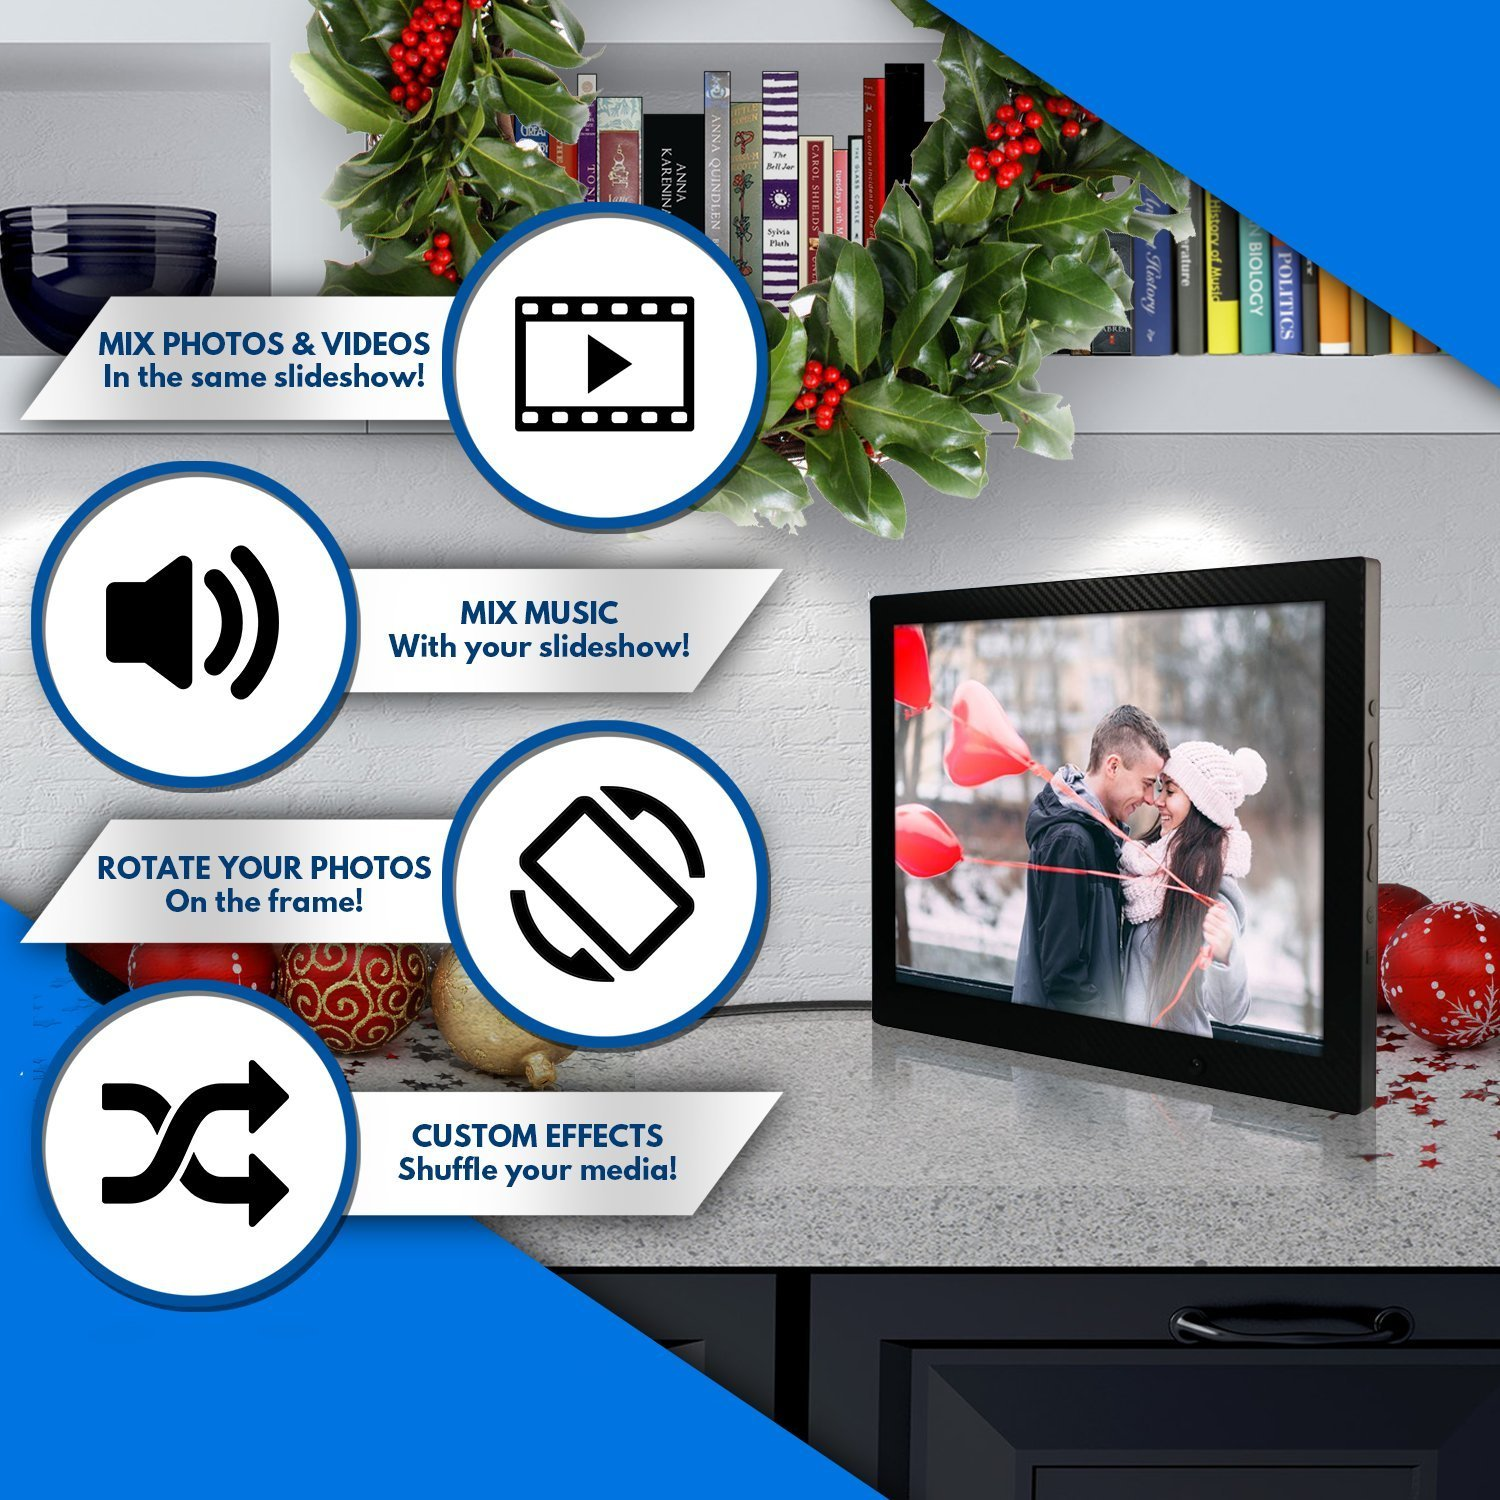 12 inch HD Digital Picture Frame Carbon Fiber - 1080p High Definition Electronic Photo Frame With Video, 16GB Memory, Motion Sensor, Built-In Speakers & Remote Control - (Black) by Spiro Goods (Image #4)